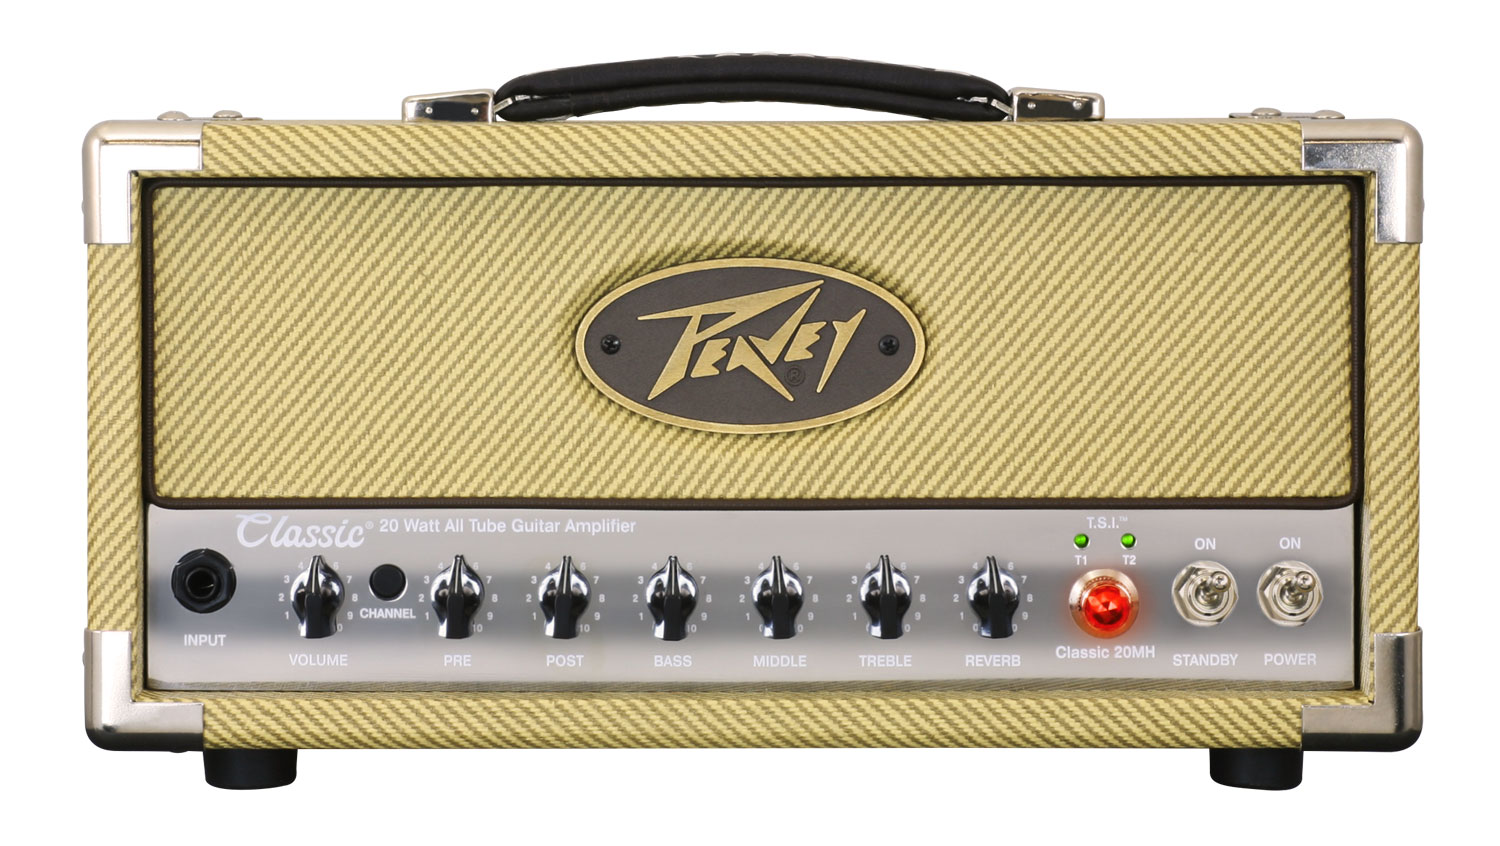 Tube Amp Head : peavey classic 20 mh mini head amplifier electric guitar 20w tube amp head pev15 3614150 rs ~ Hamham.info Haus und Dekorationen